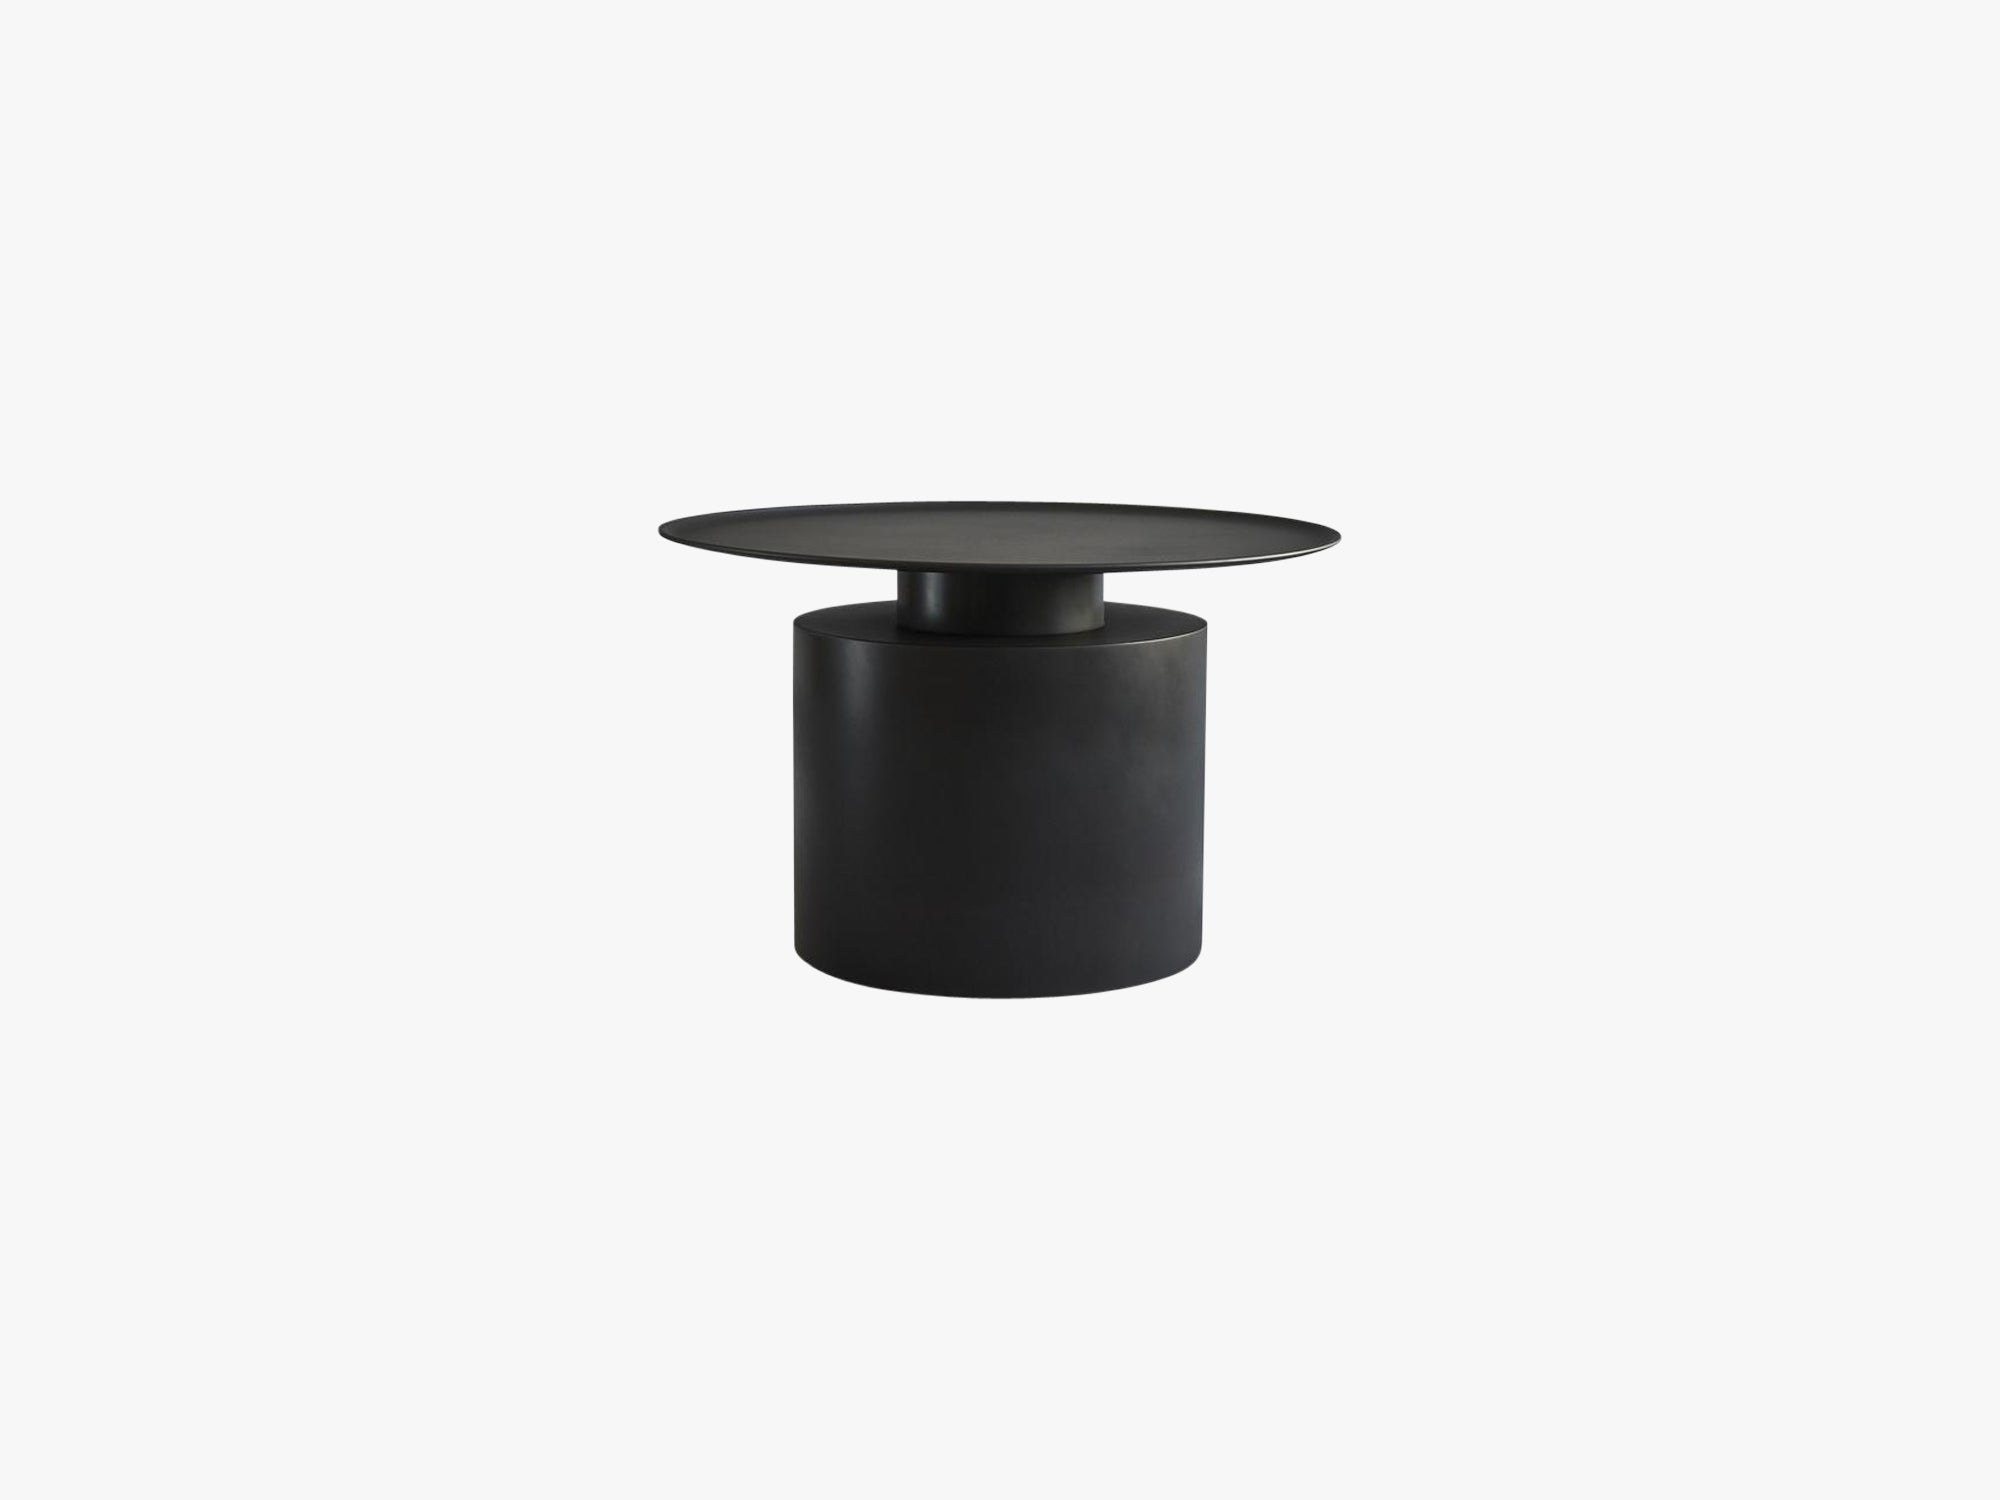 Pillar Table, Low, Burned Black fra 101 Copenhagen